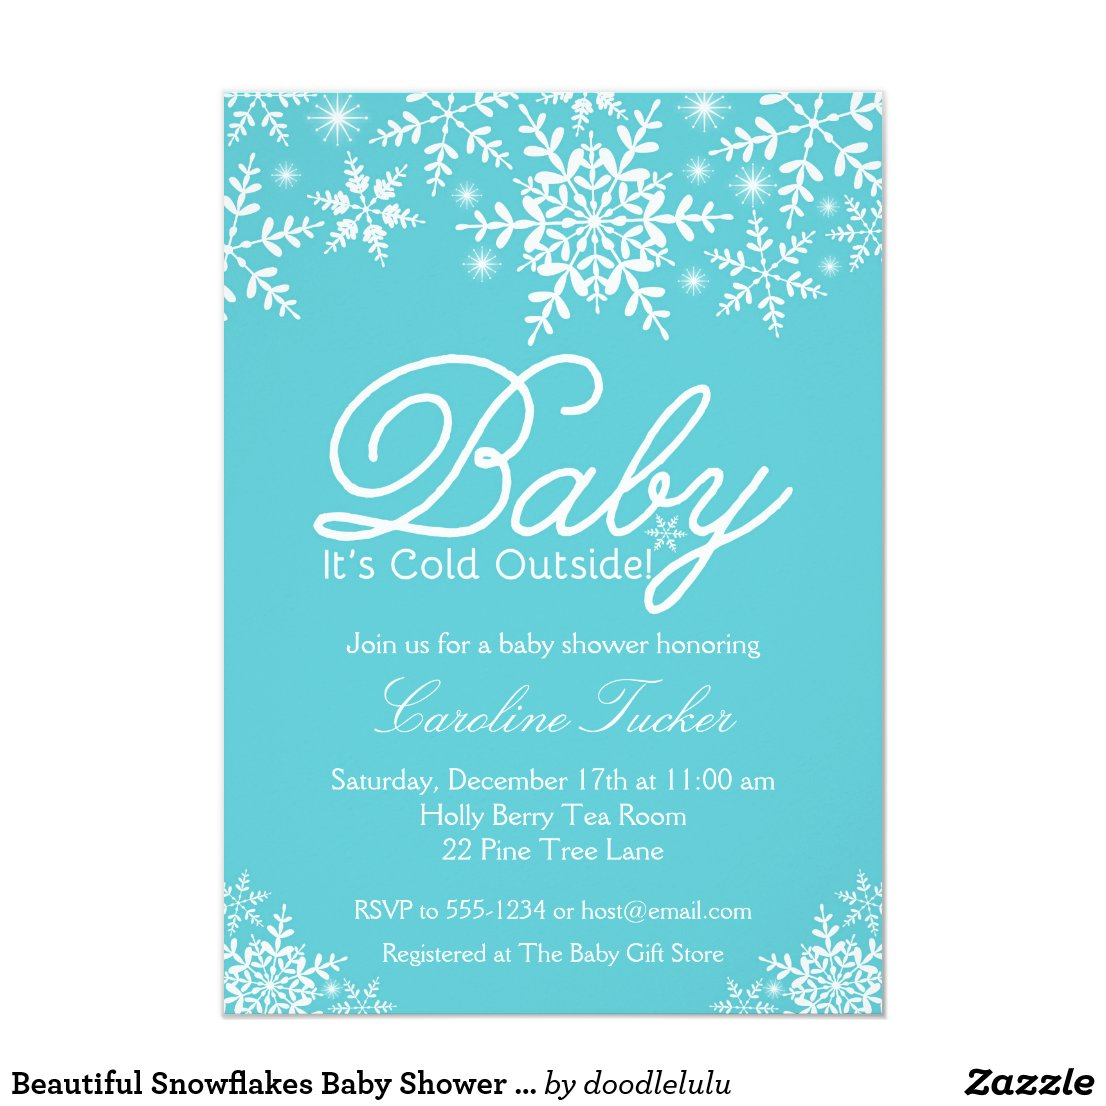 Beautiful Snowflakes Baby Shower Invitation